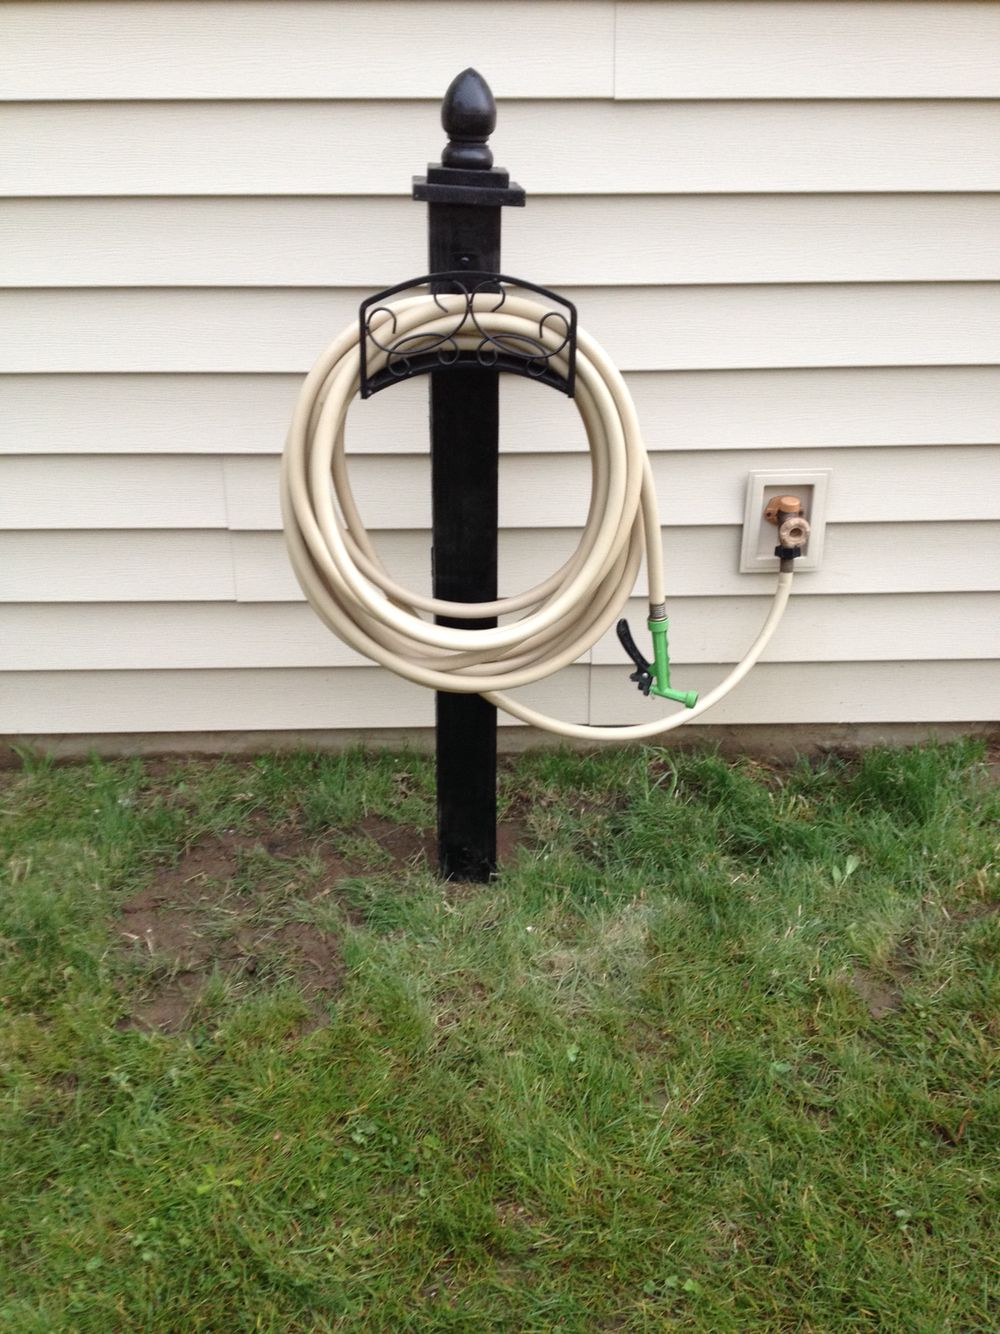 Build Your Own Garden Hose Reel 4 Foot Treated Post 1x6 Cut To 5x5 And 4x4 With A Fence Finial Wall Mount Lowes Had Pretty